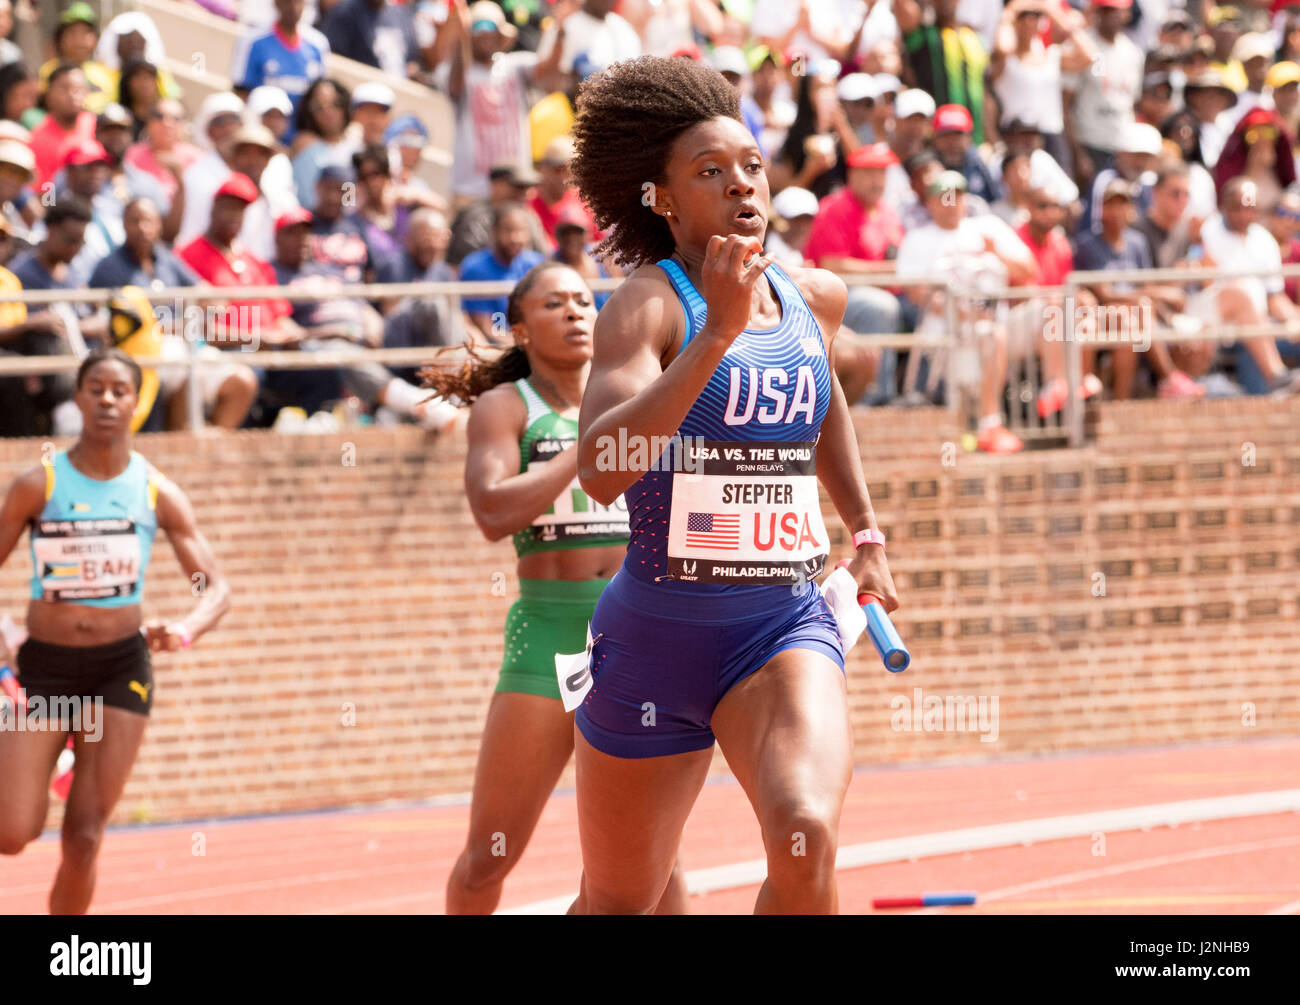 Philadelphia, Pennsylvania, USA. 29th Apr, 2017. JAIDE STEPTER, of Team USA, competing in the USA vs the World Women - Stock Image